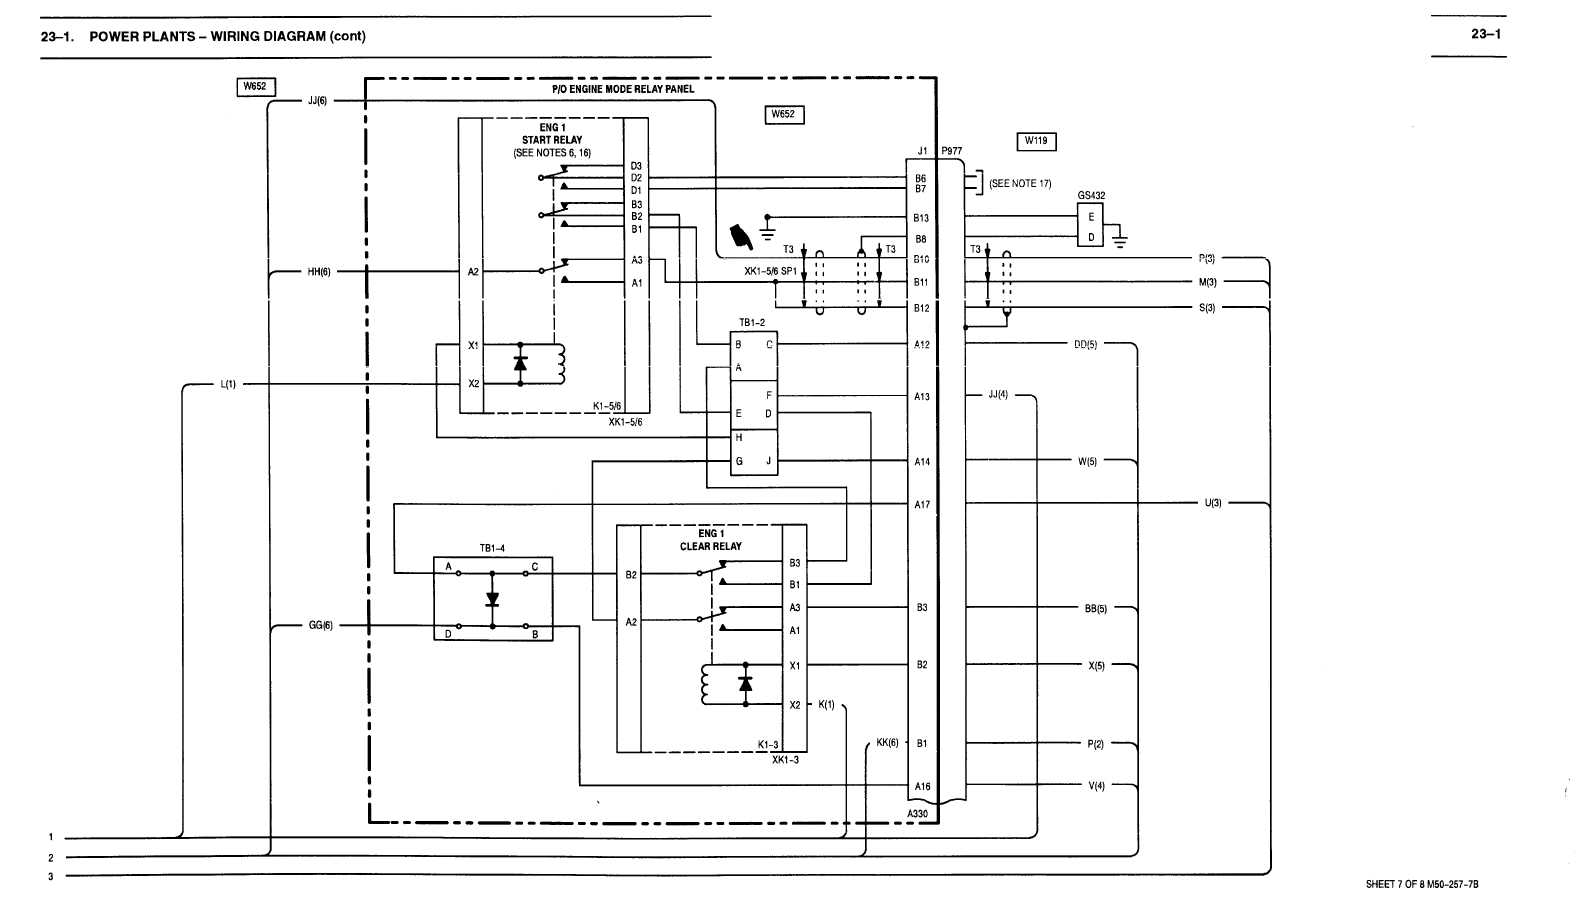 23-1  Power Plants -wiring Diagram  Cont